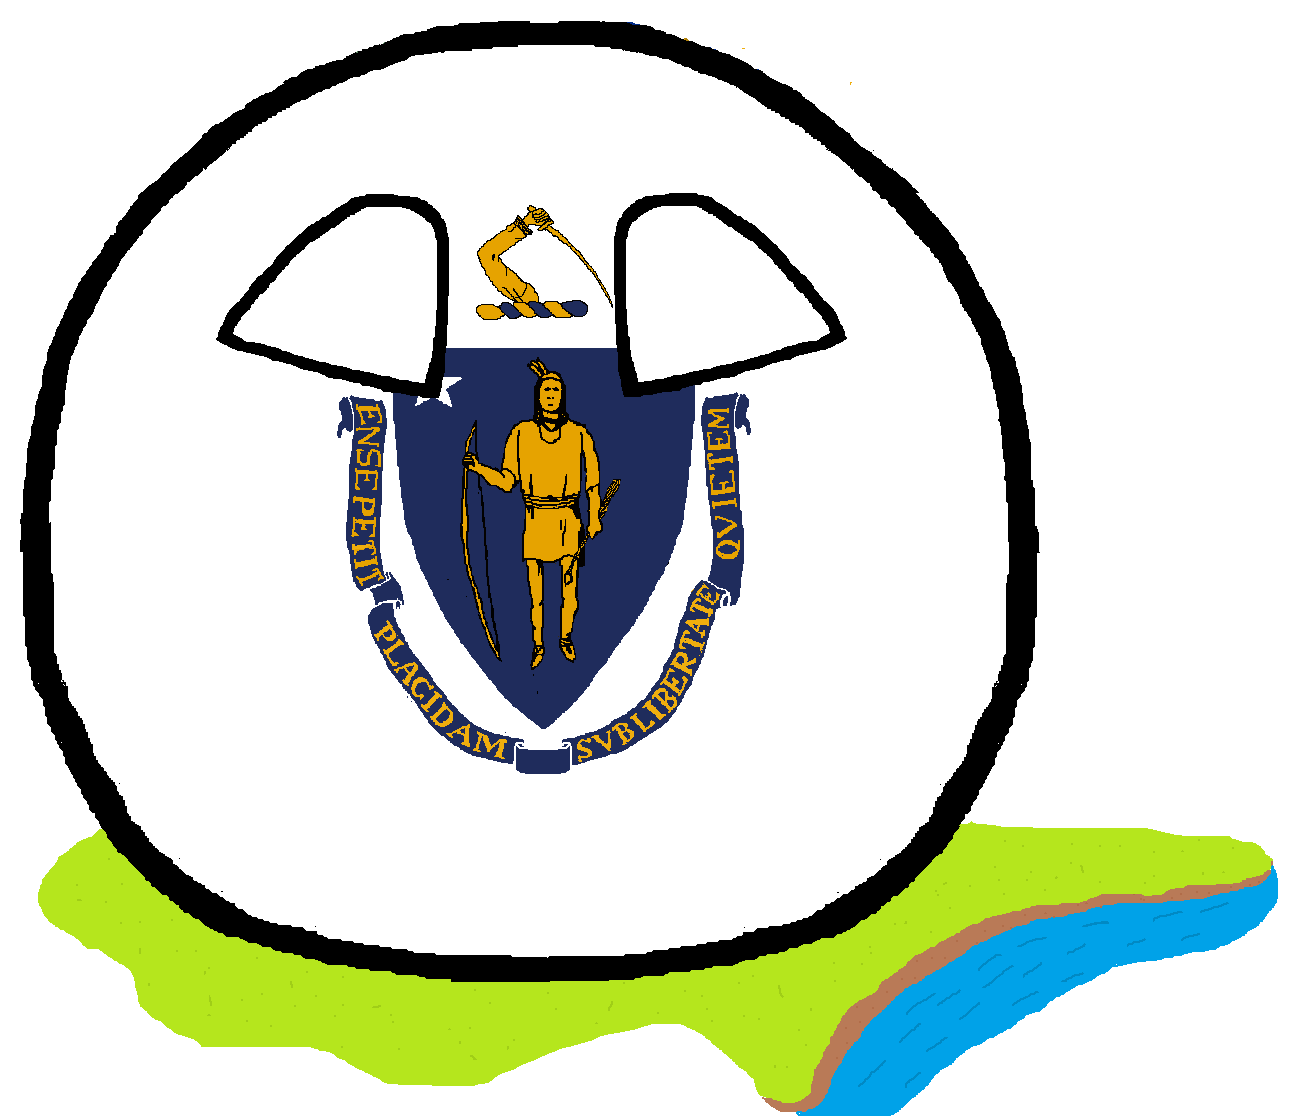 Massachusettsball